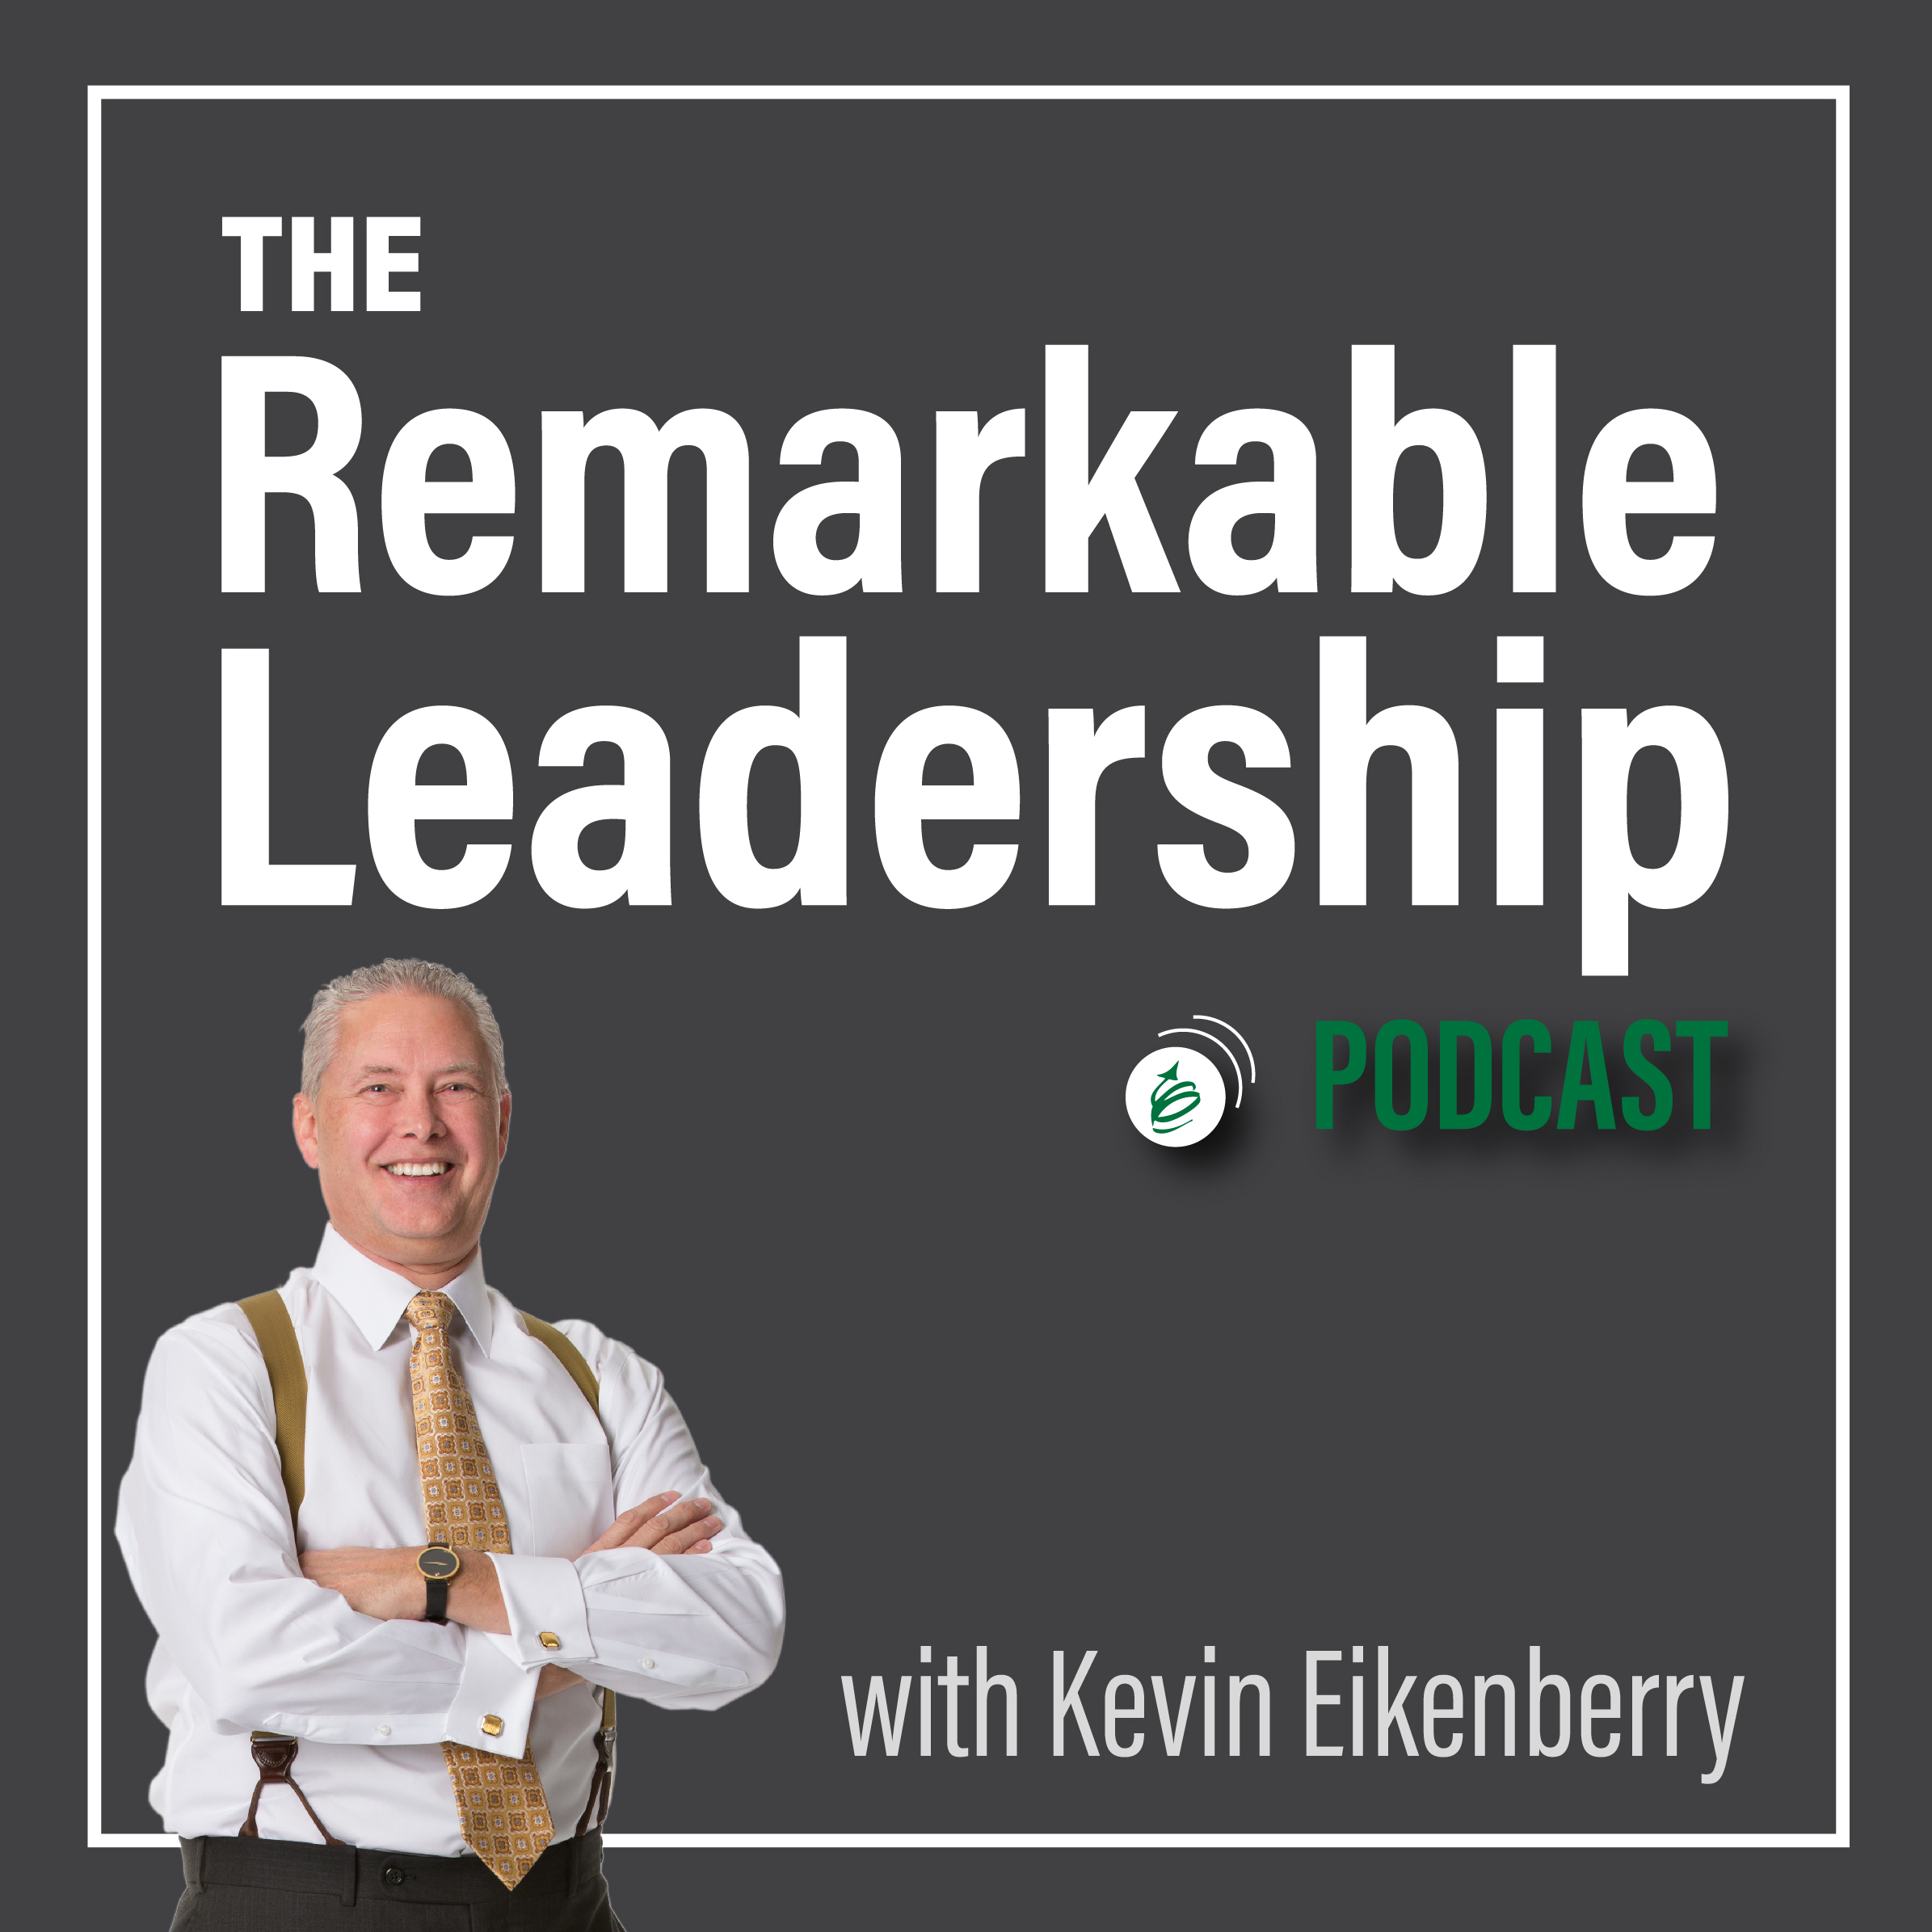 The Remarkable Leadership Podcast show art